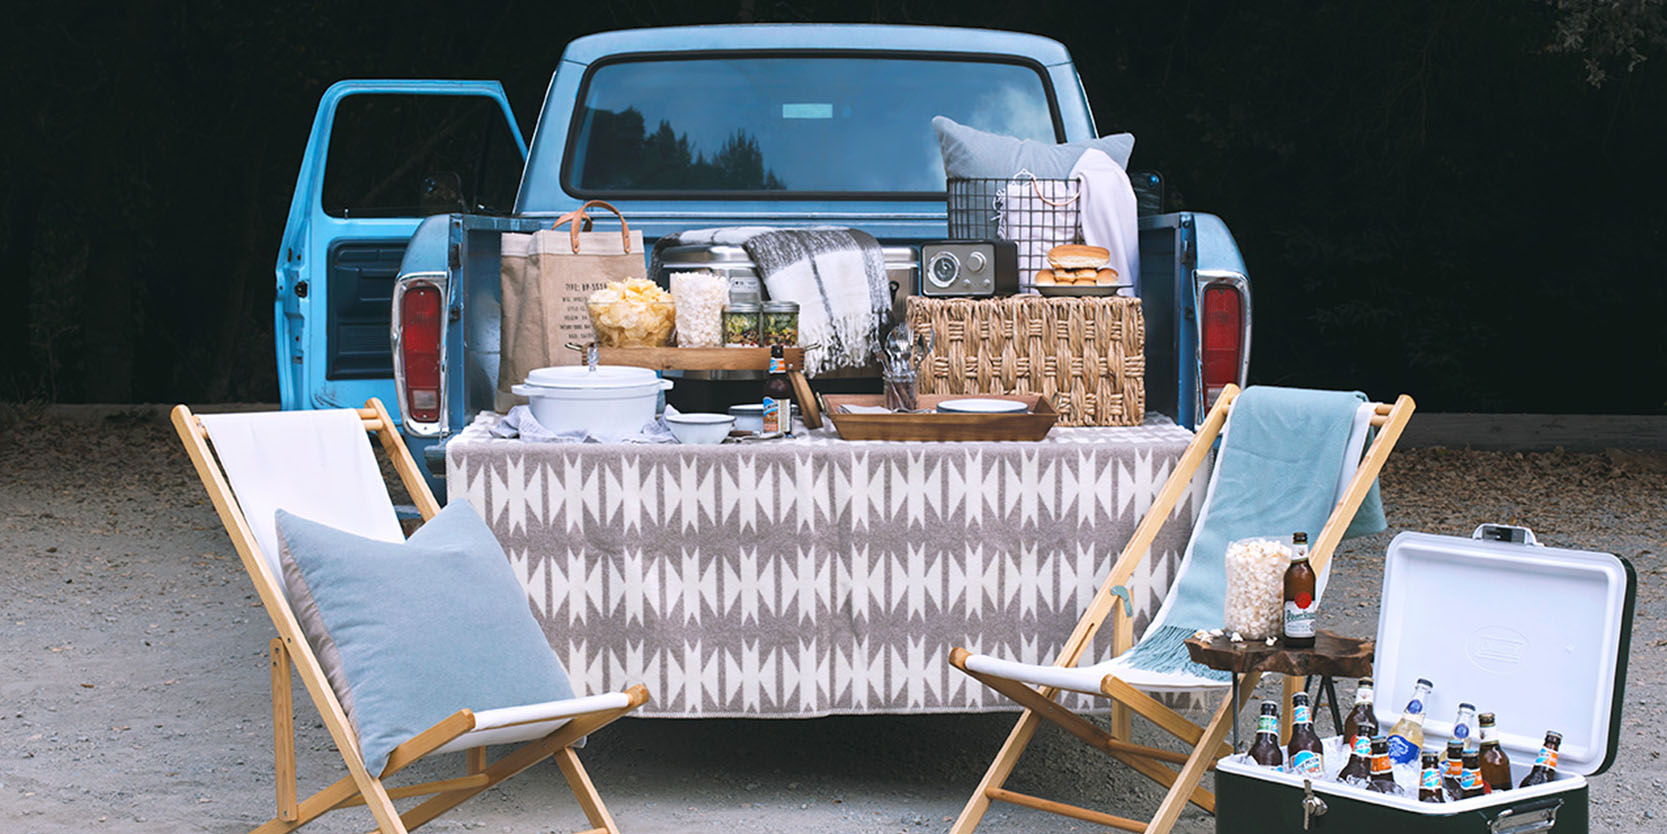 Article - Tailgating Image 1